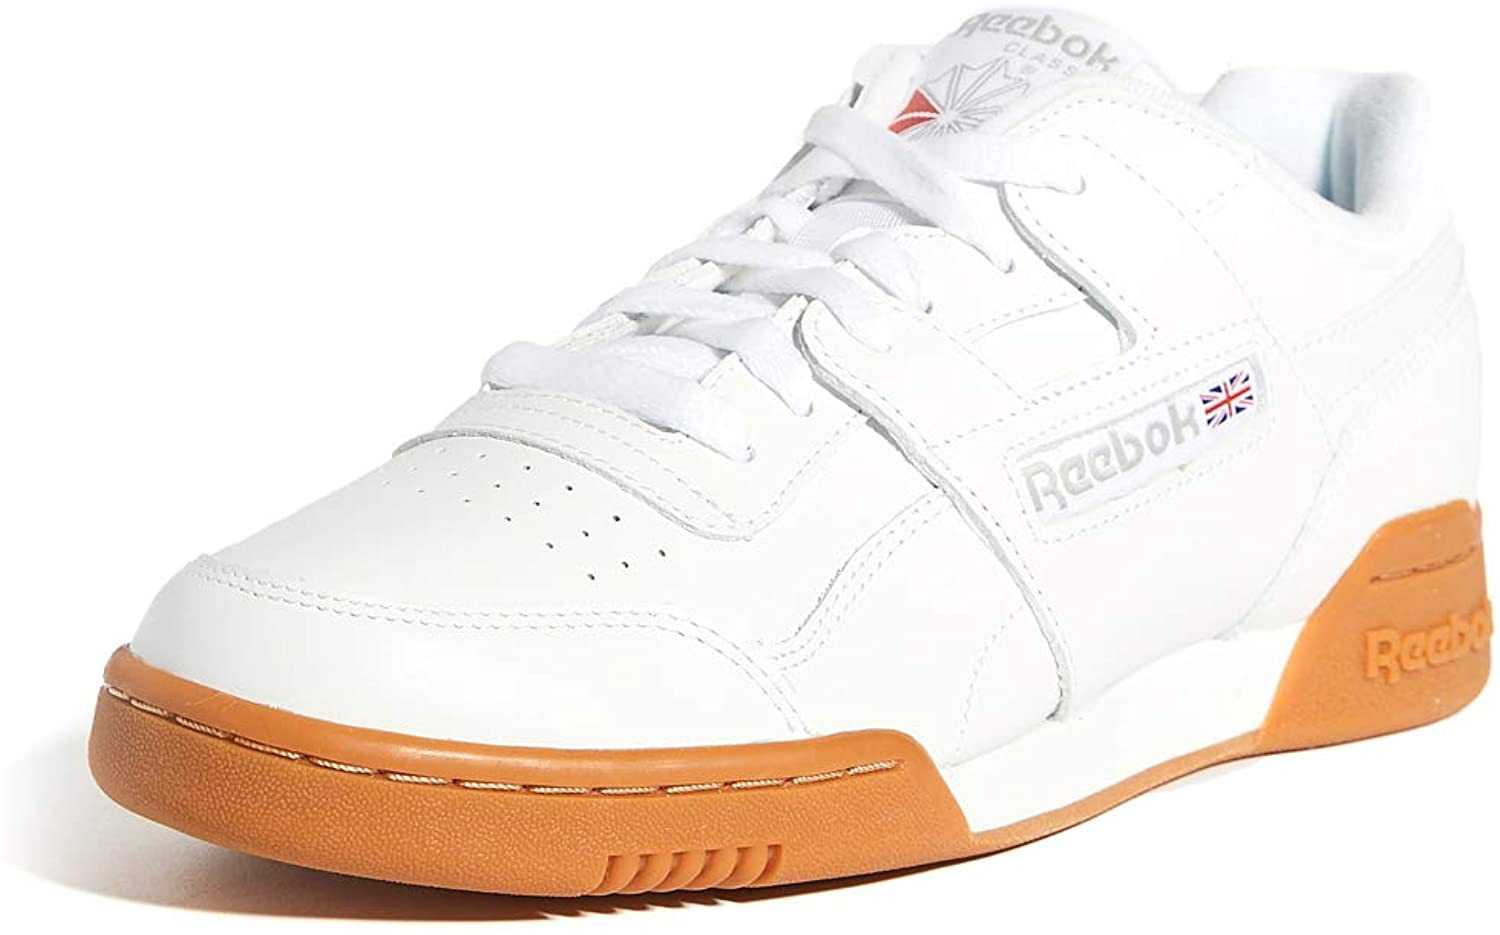 Reebok Mens Workout Plus Cross Trainer, White/Carbon/Classic red, 9 M US